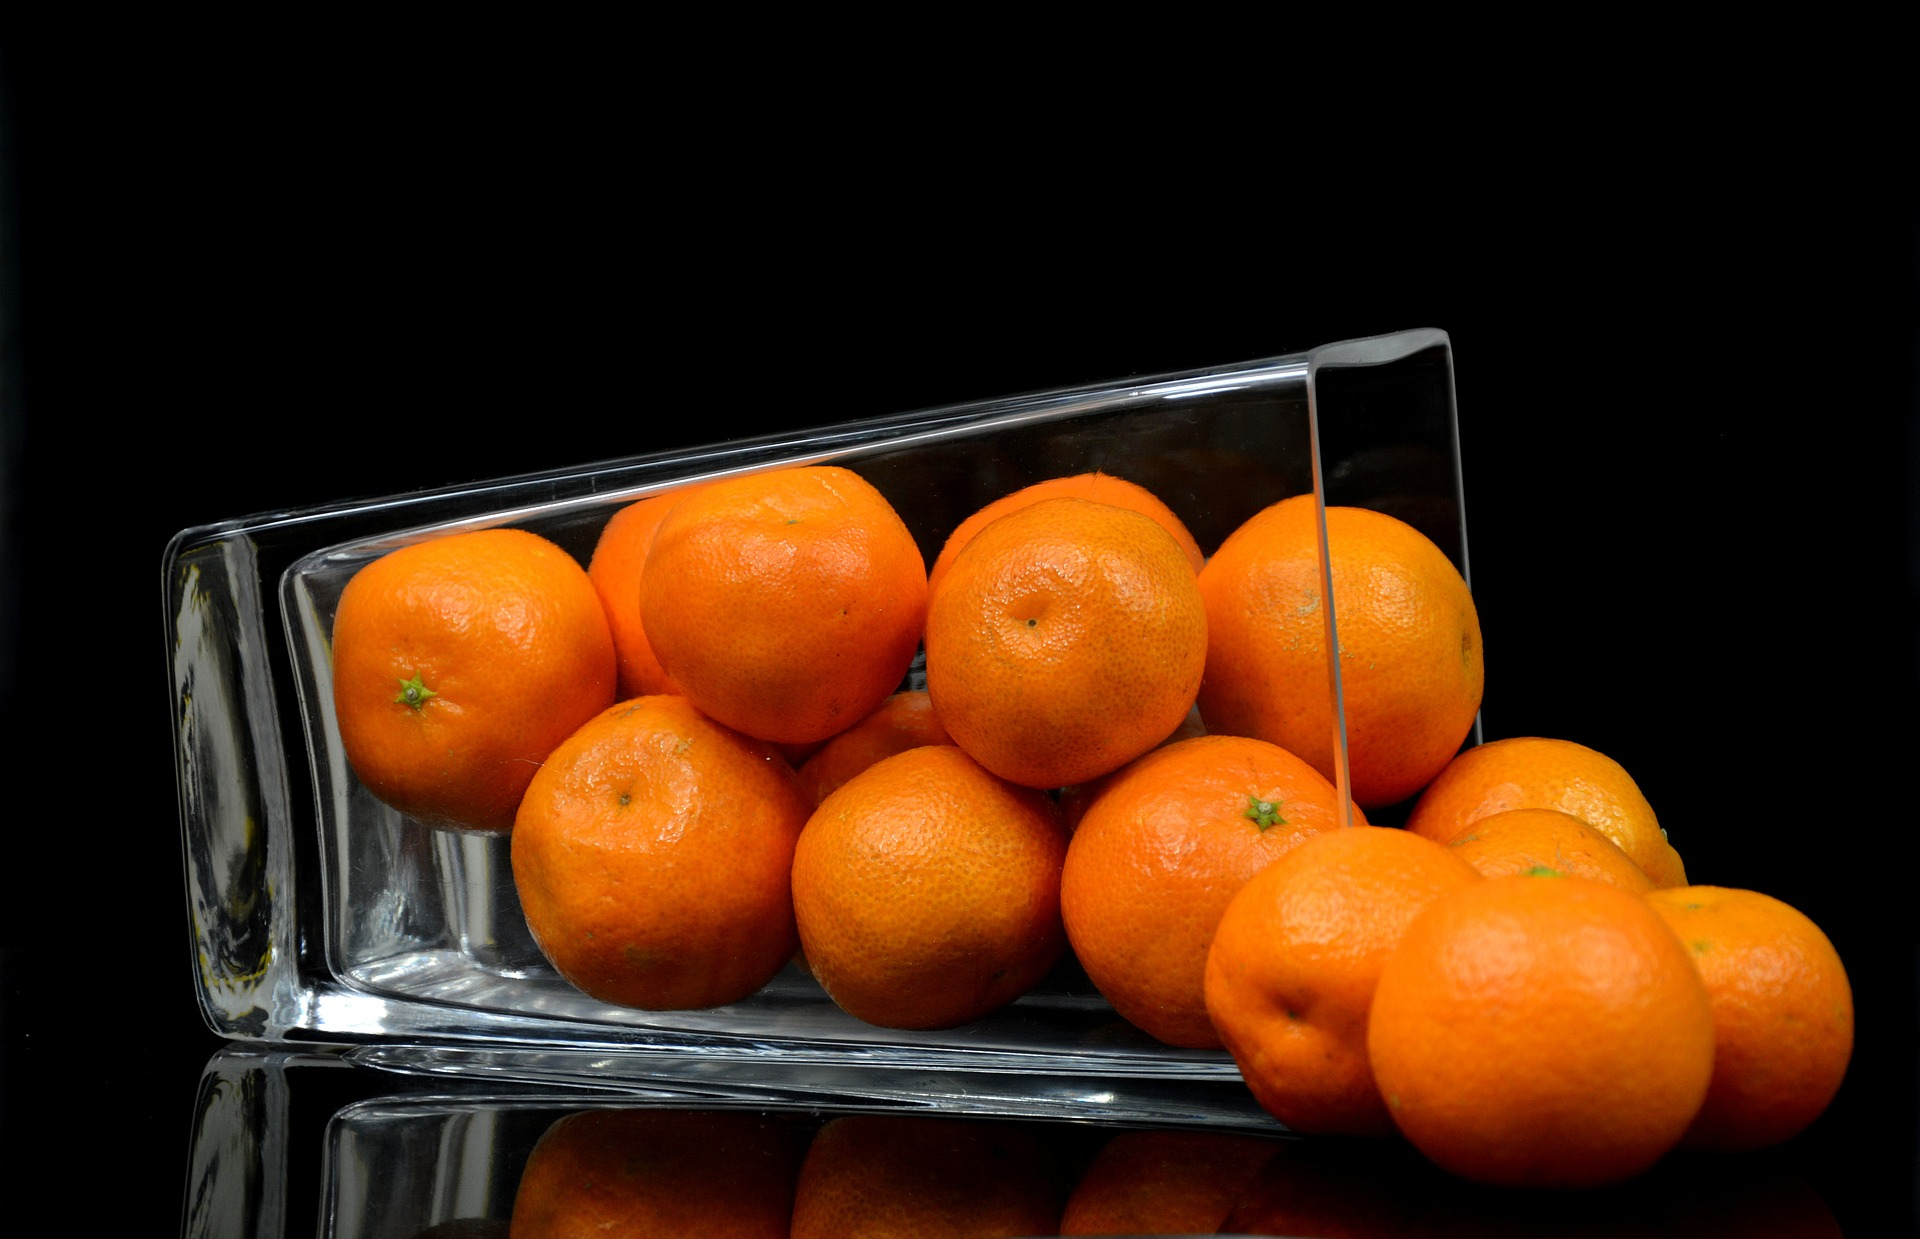 fresh produce: oranges